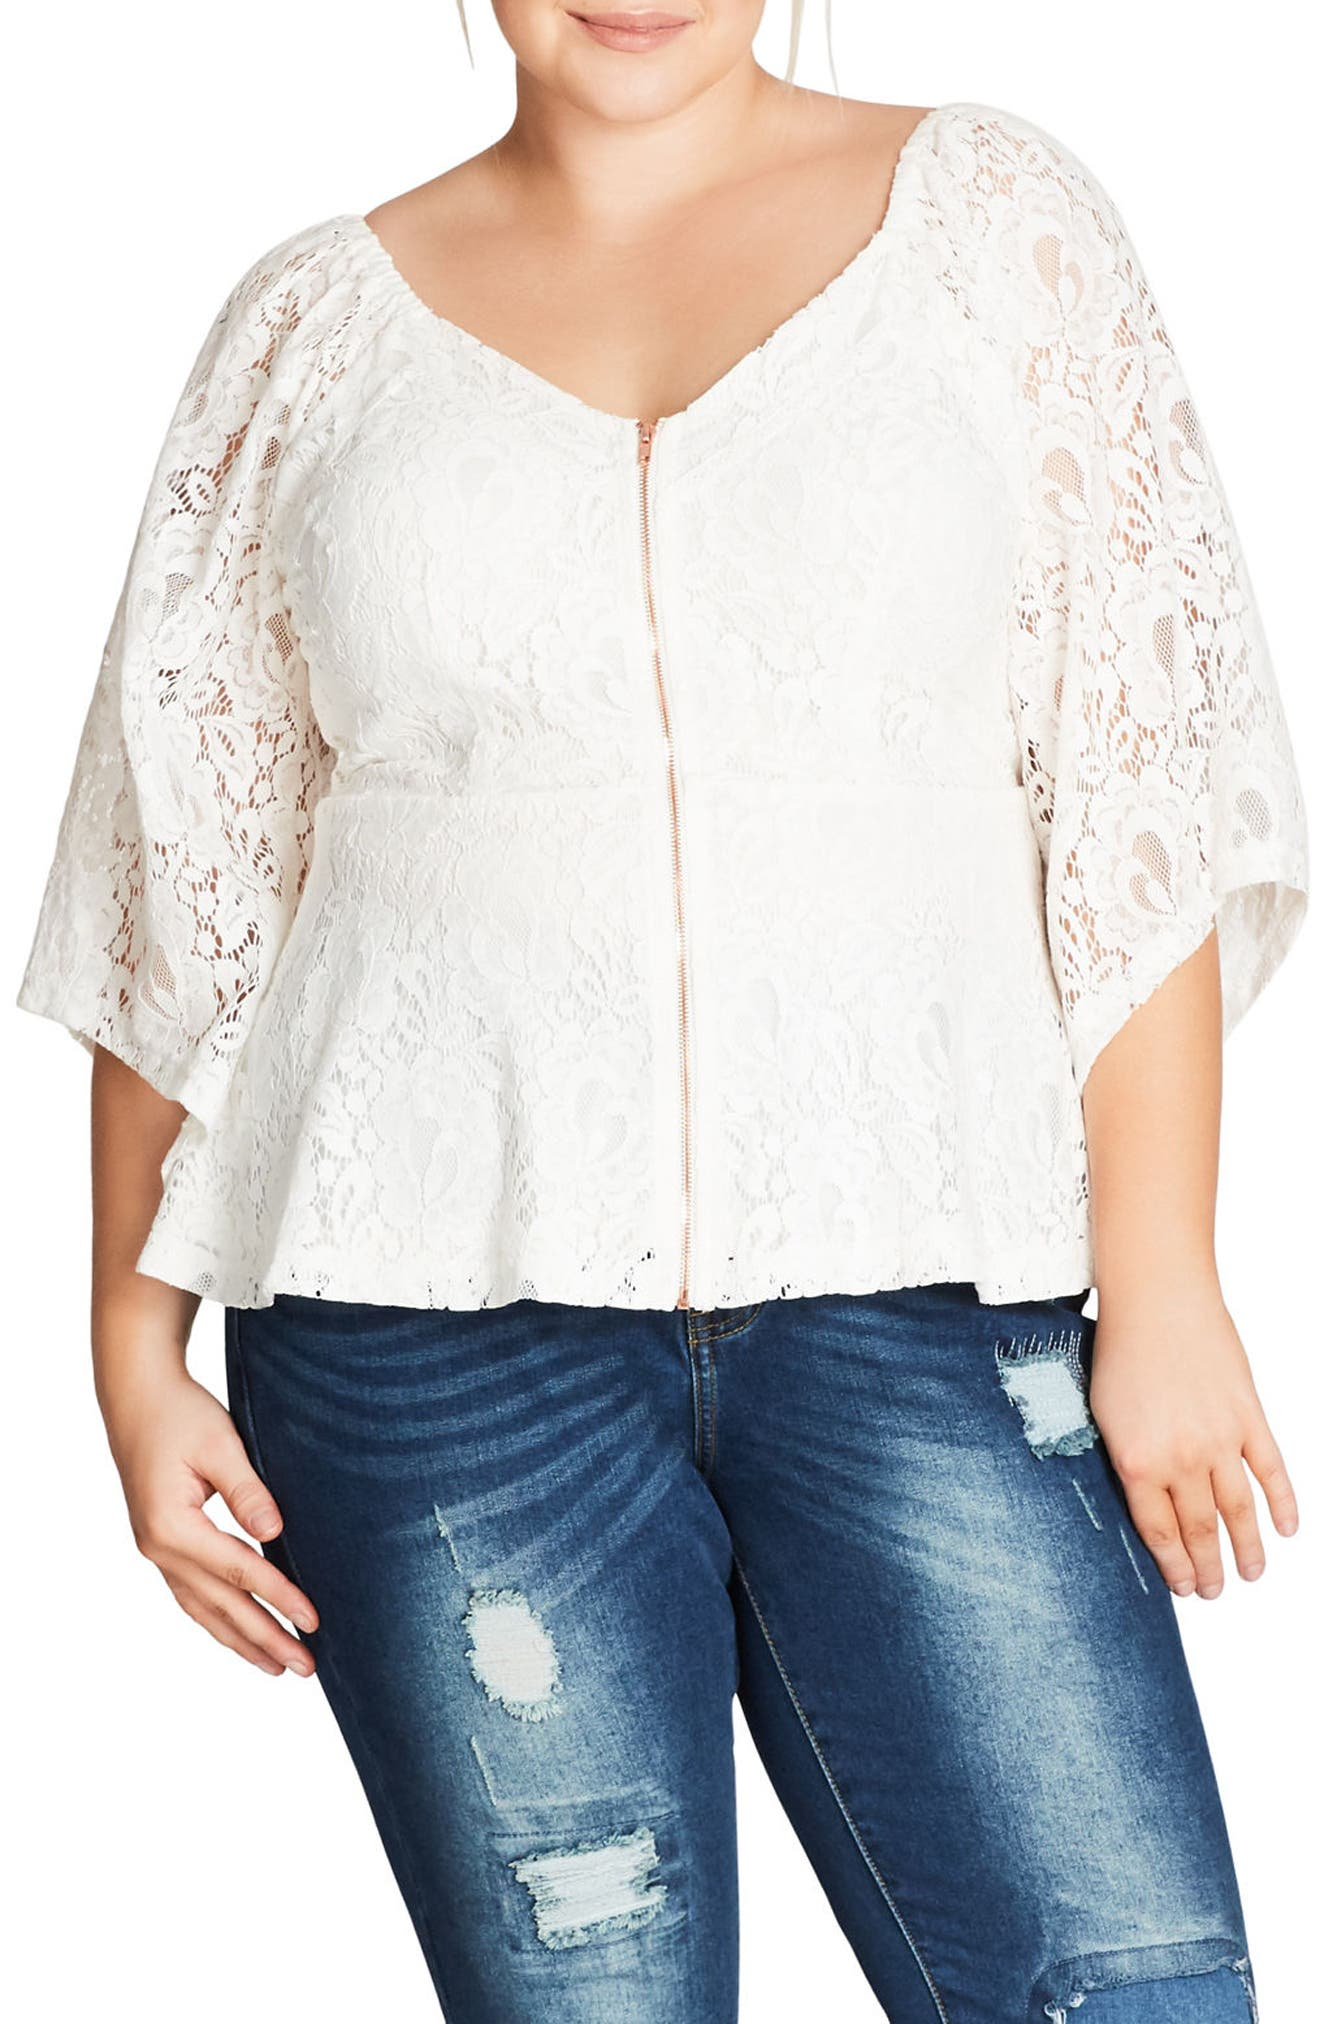 Sheer Romance Lace Top,                         Main,                         color, Ivory